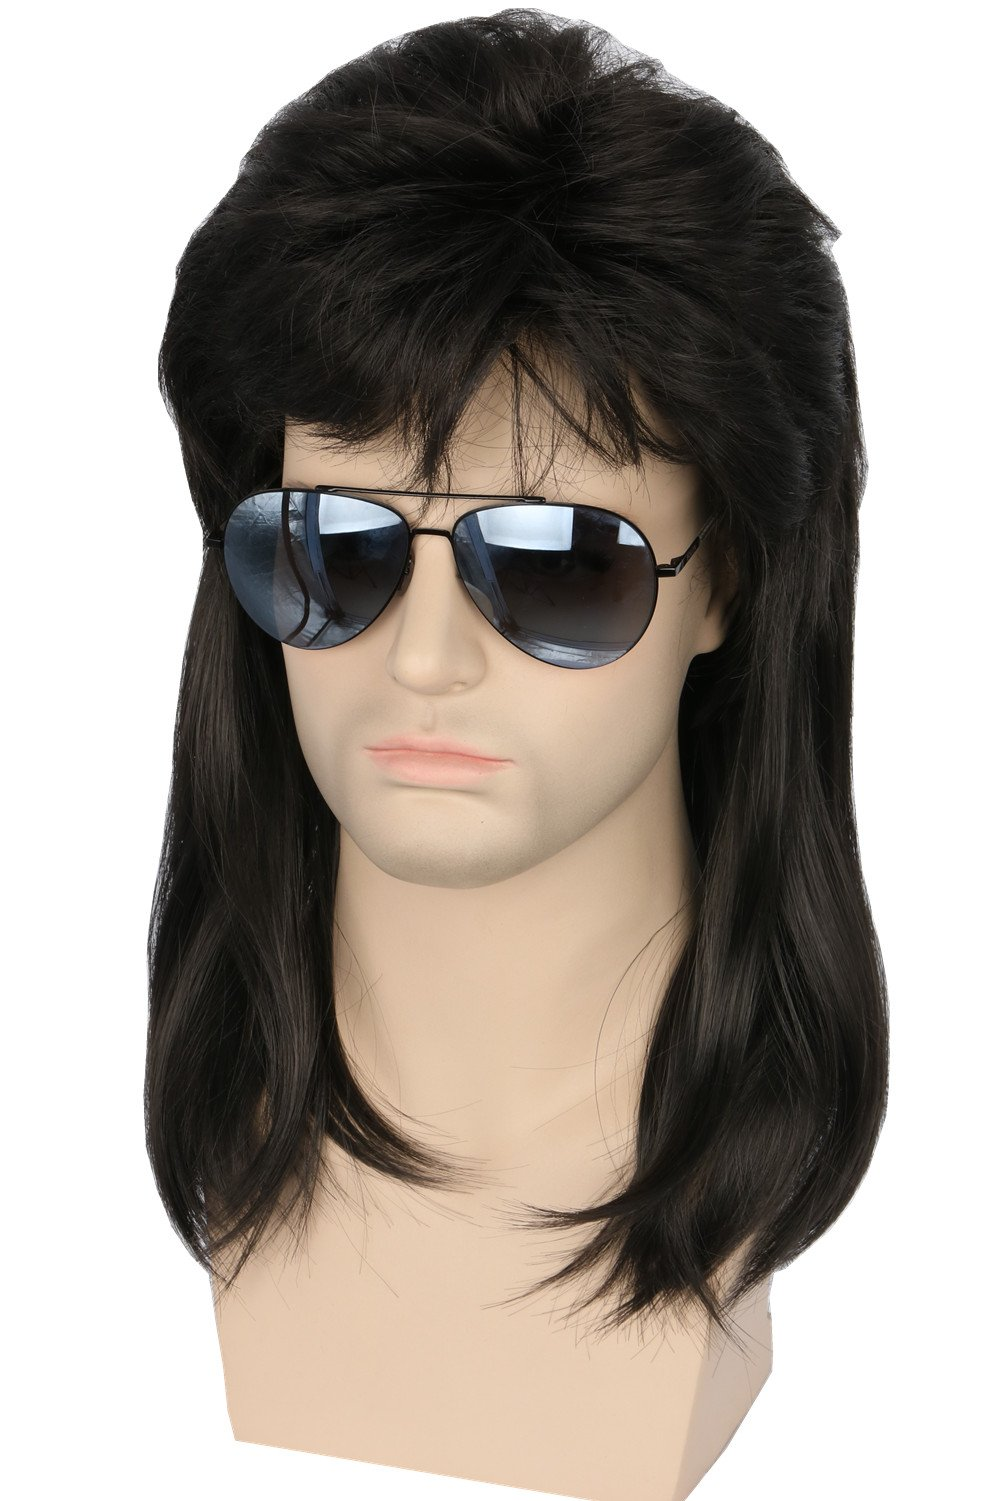 Topcosplay 80s Hair Wig Men Wayne Wig Rocking Dude Wig Punk Metal Rocker Disco Mullet Wig (Black Wavy)